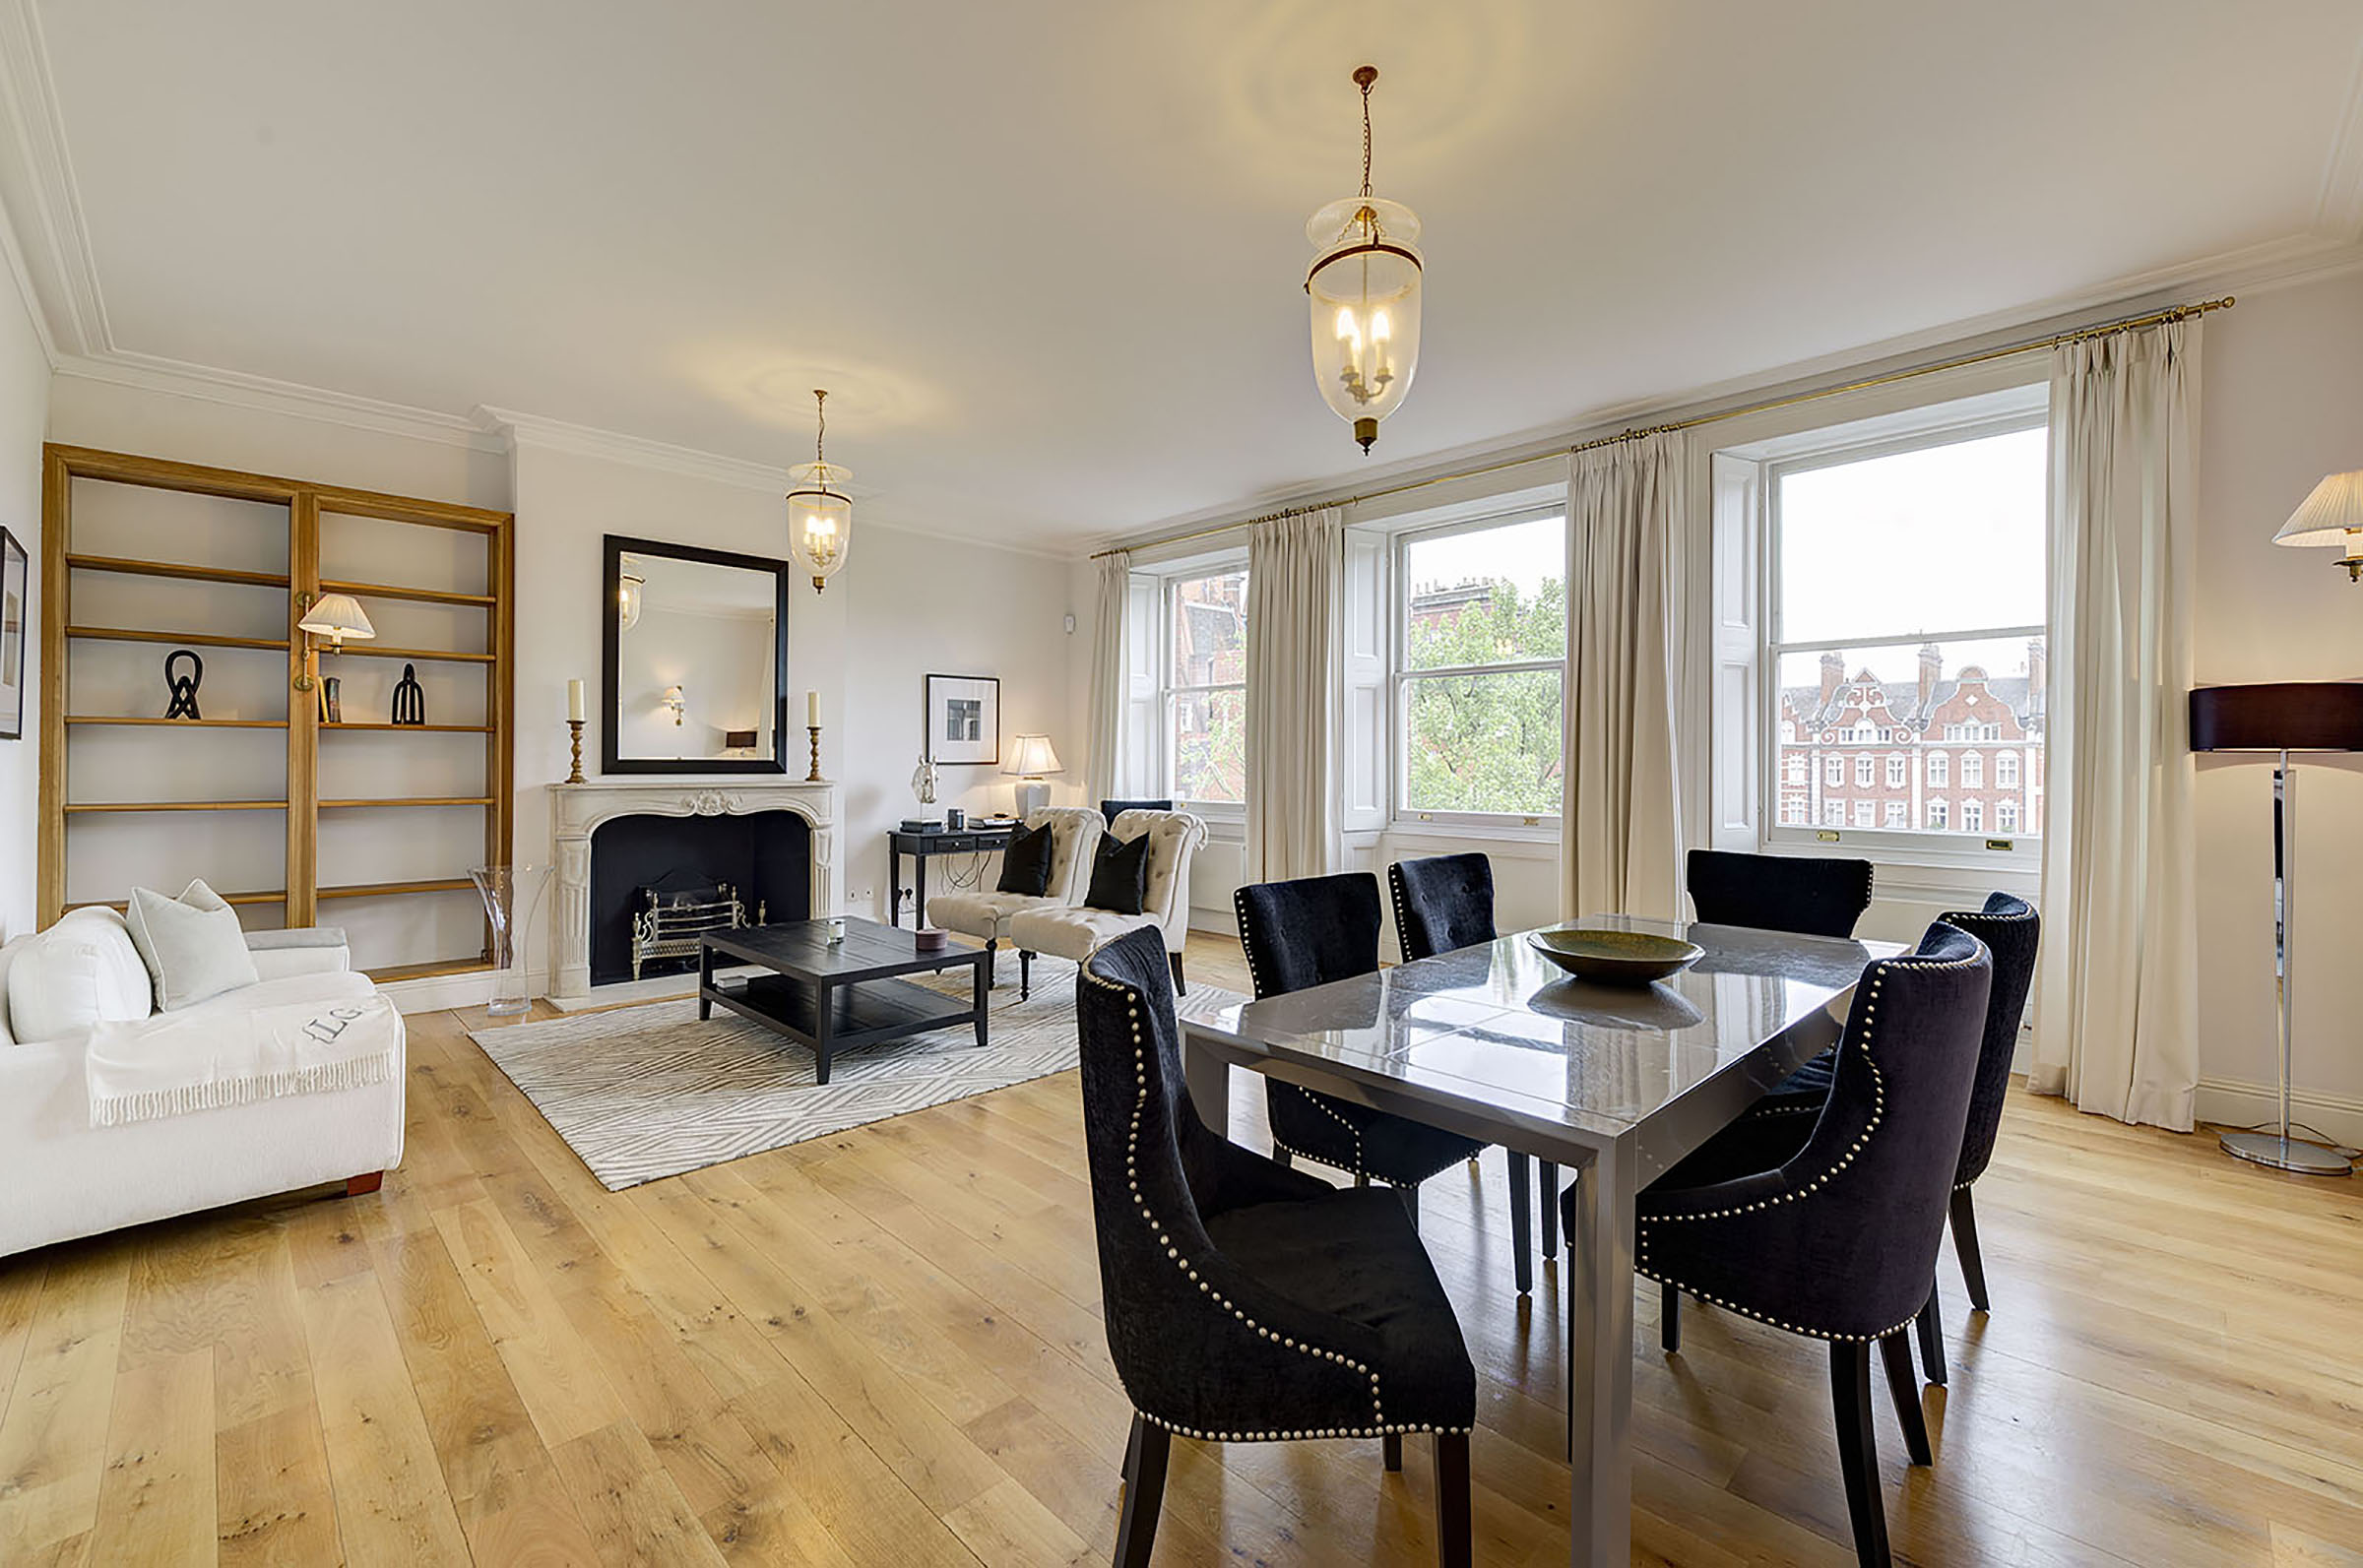 Apartment for Sale at Cadogan Square London, England, United Kingdom